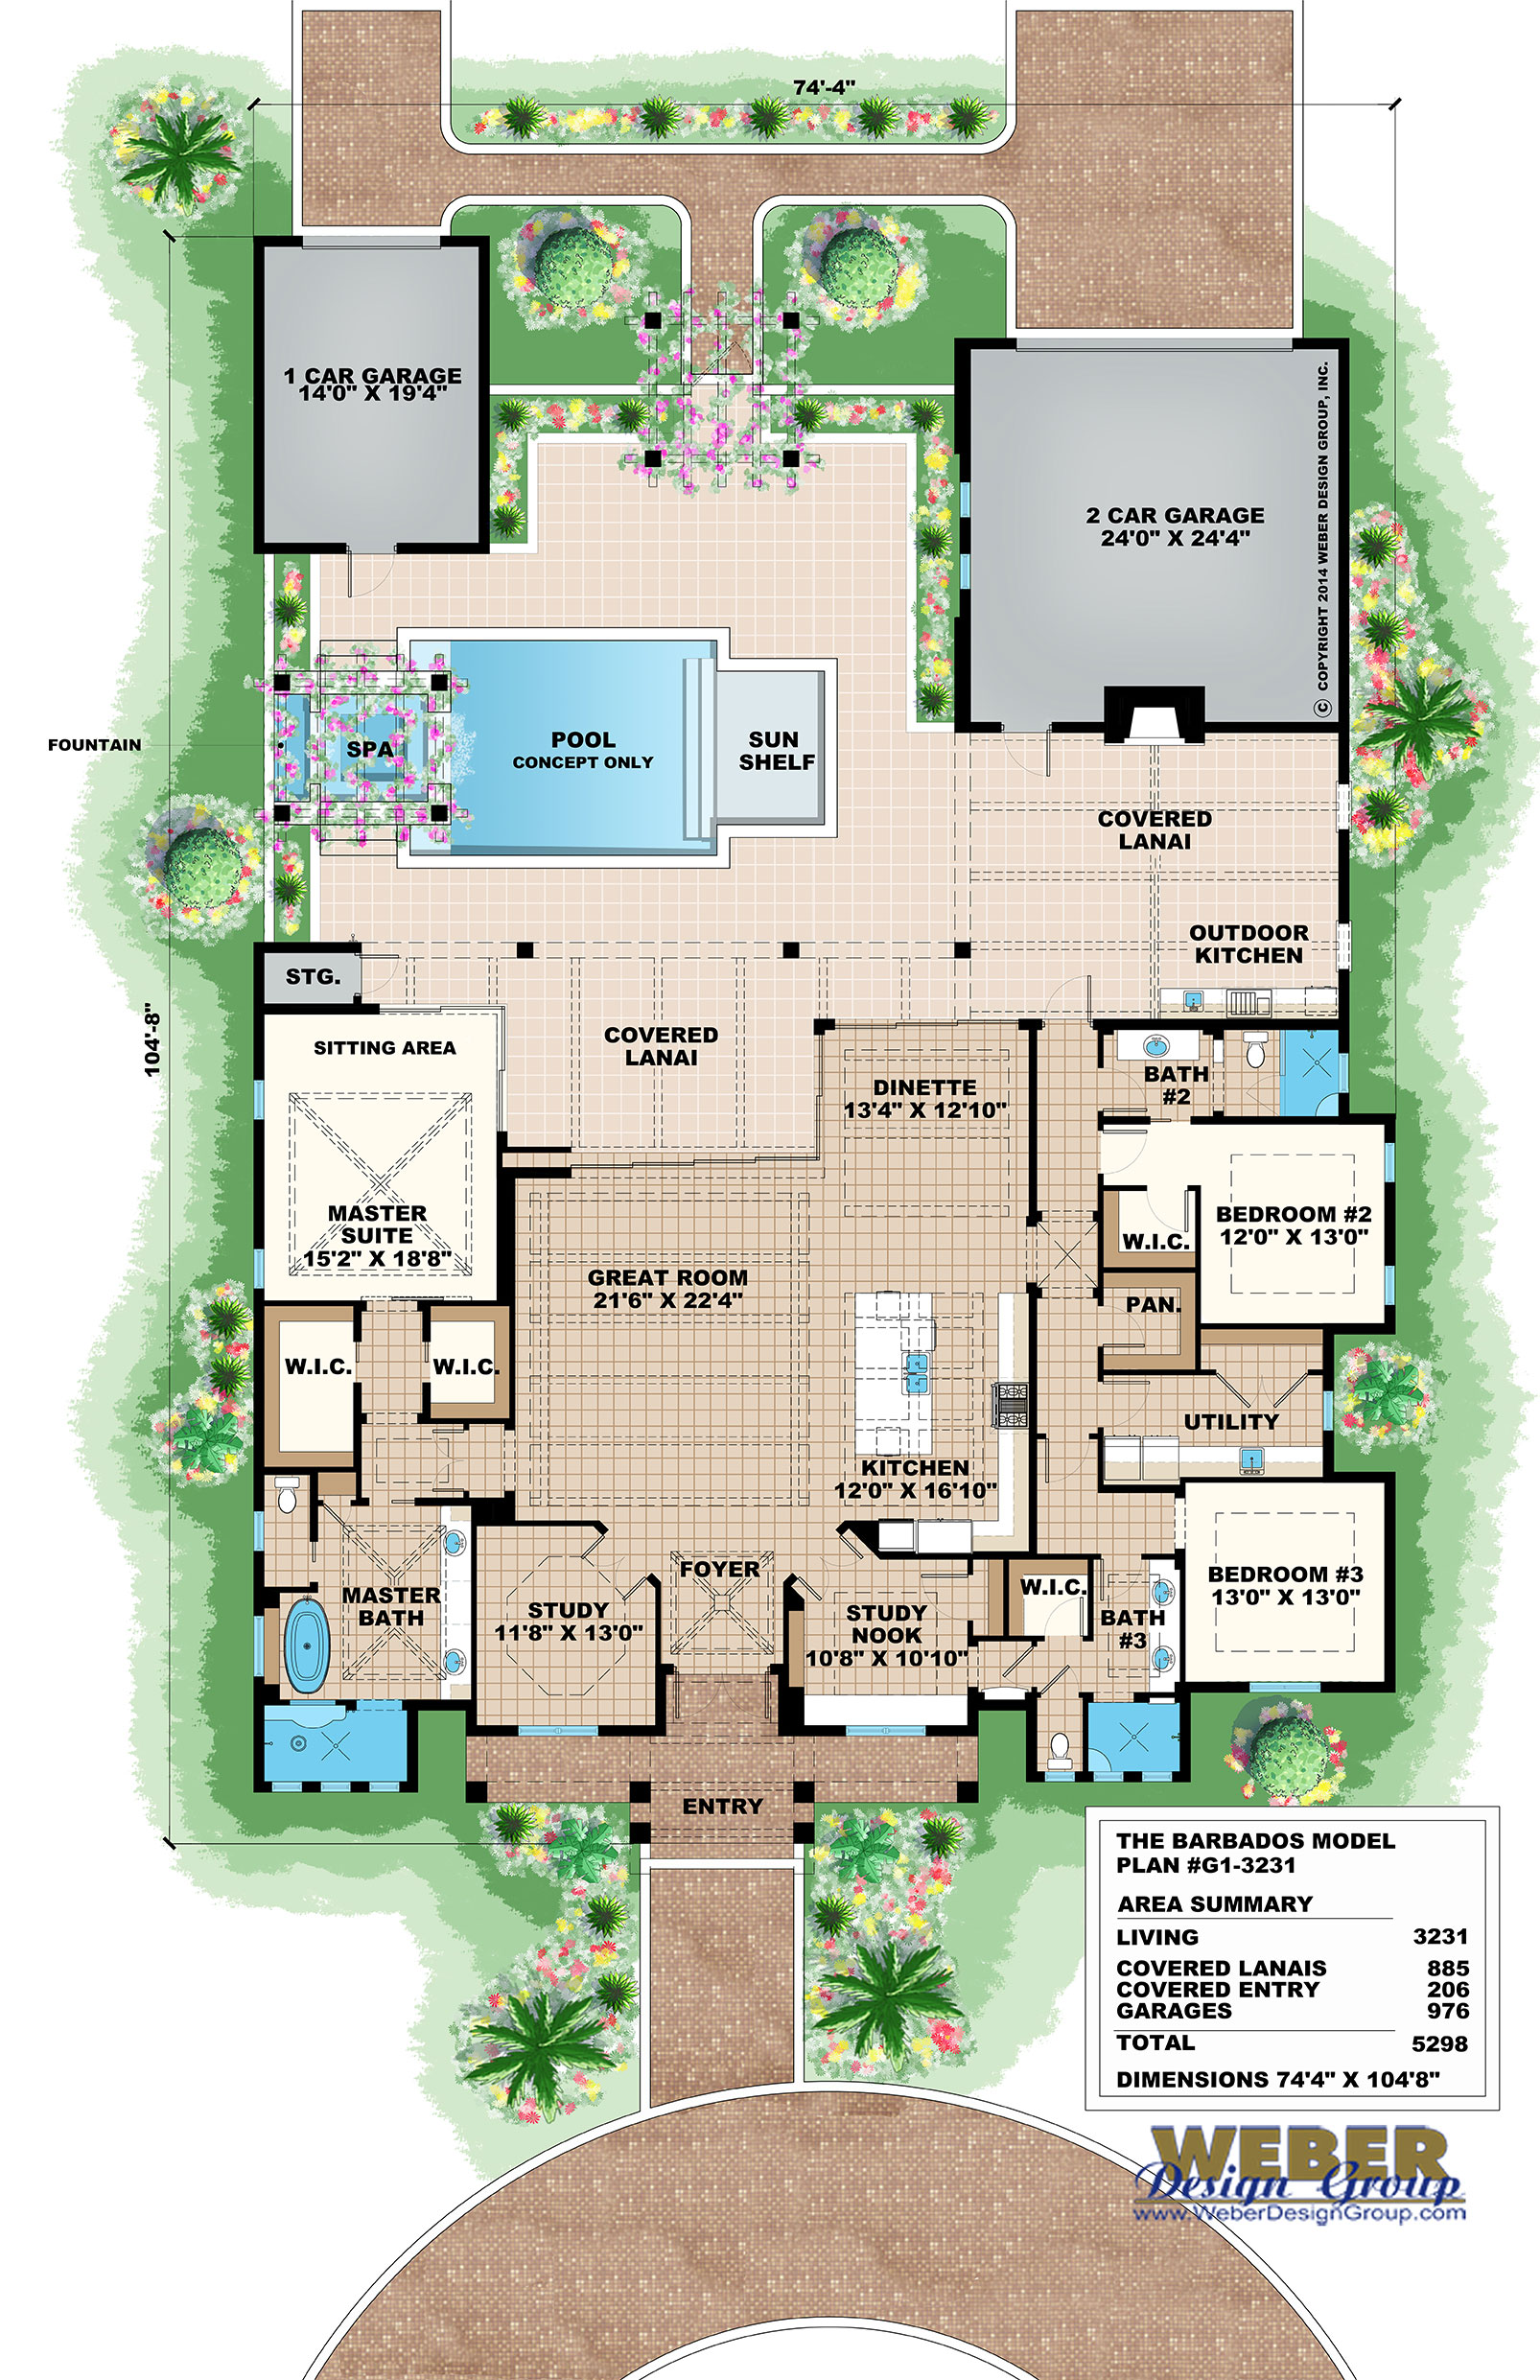 Beach House Plan Old Florida Coastal & West In s Style Floor Plan